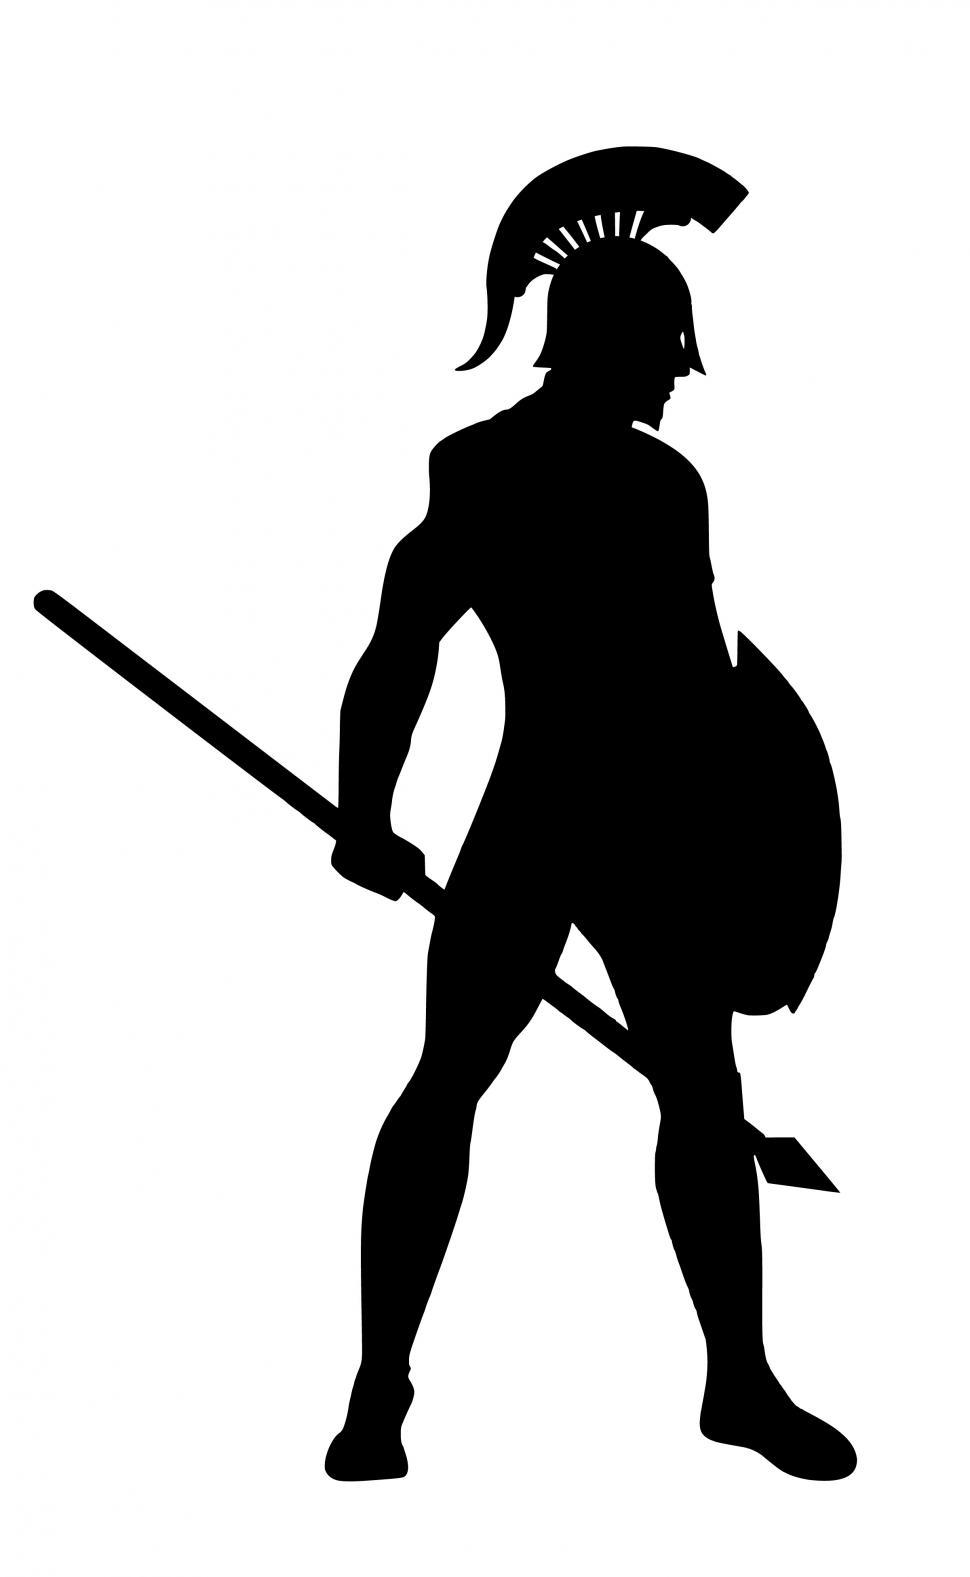 Download Free Stock Photo of Spartan warrior Silhouette